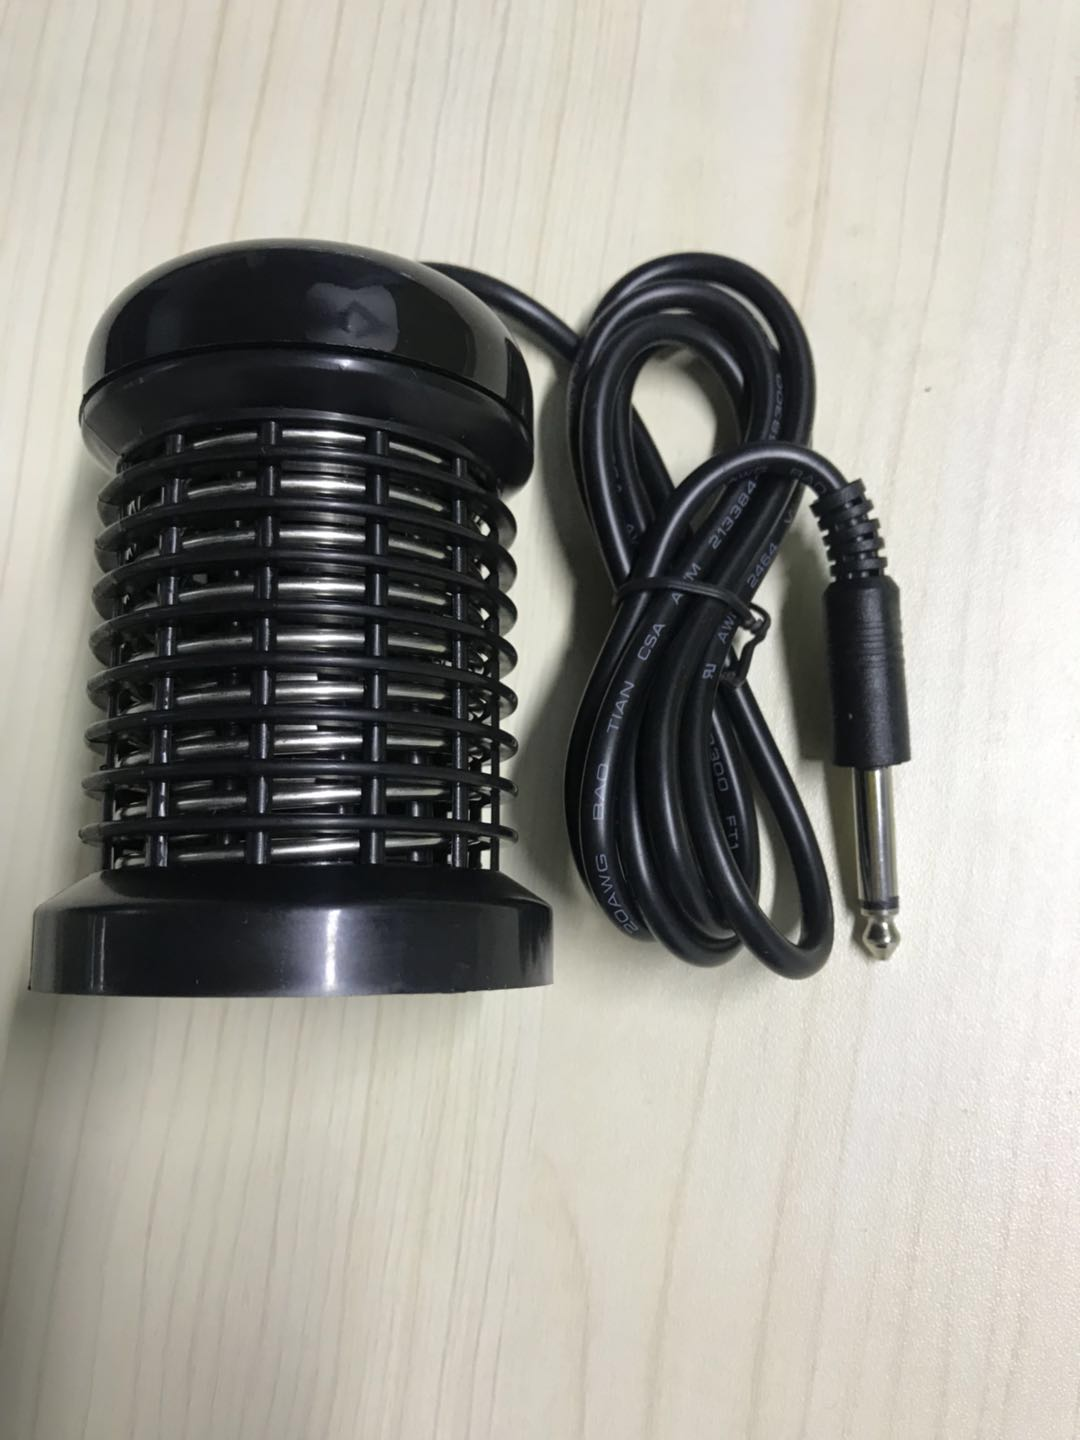 Foot Detox Machine Accessory Array And Wrist Only